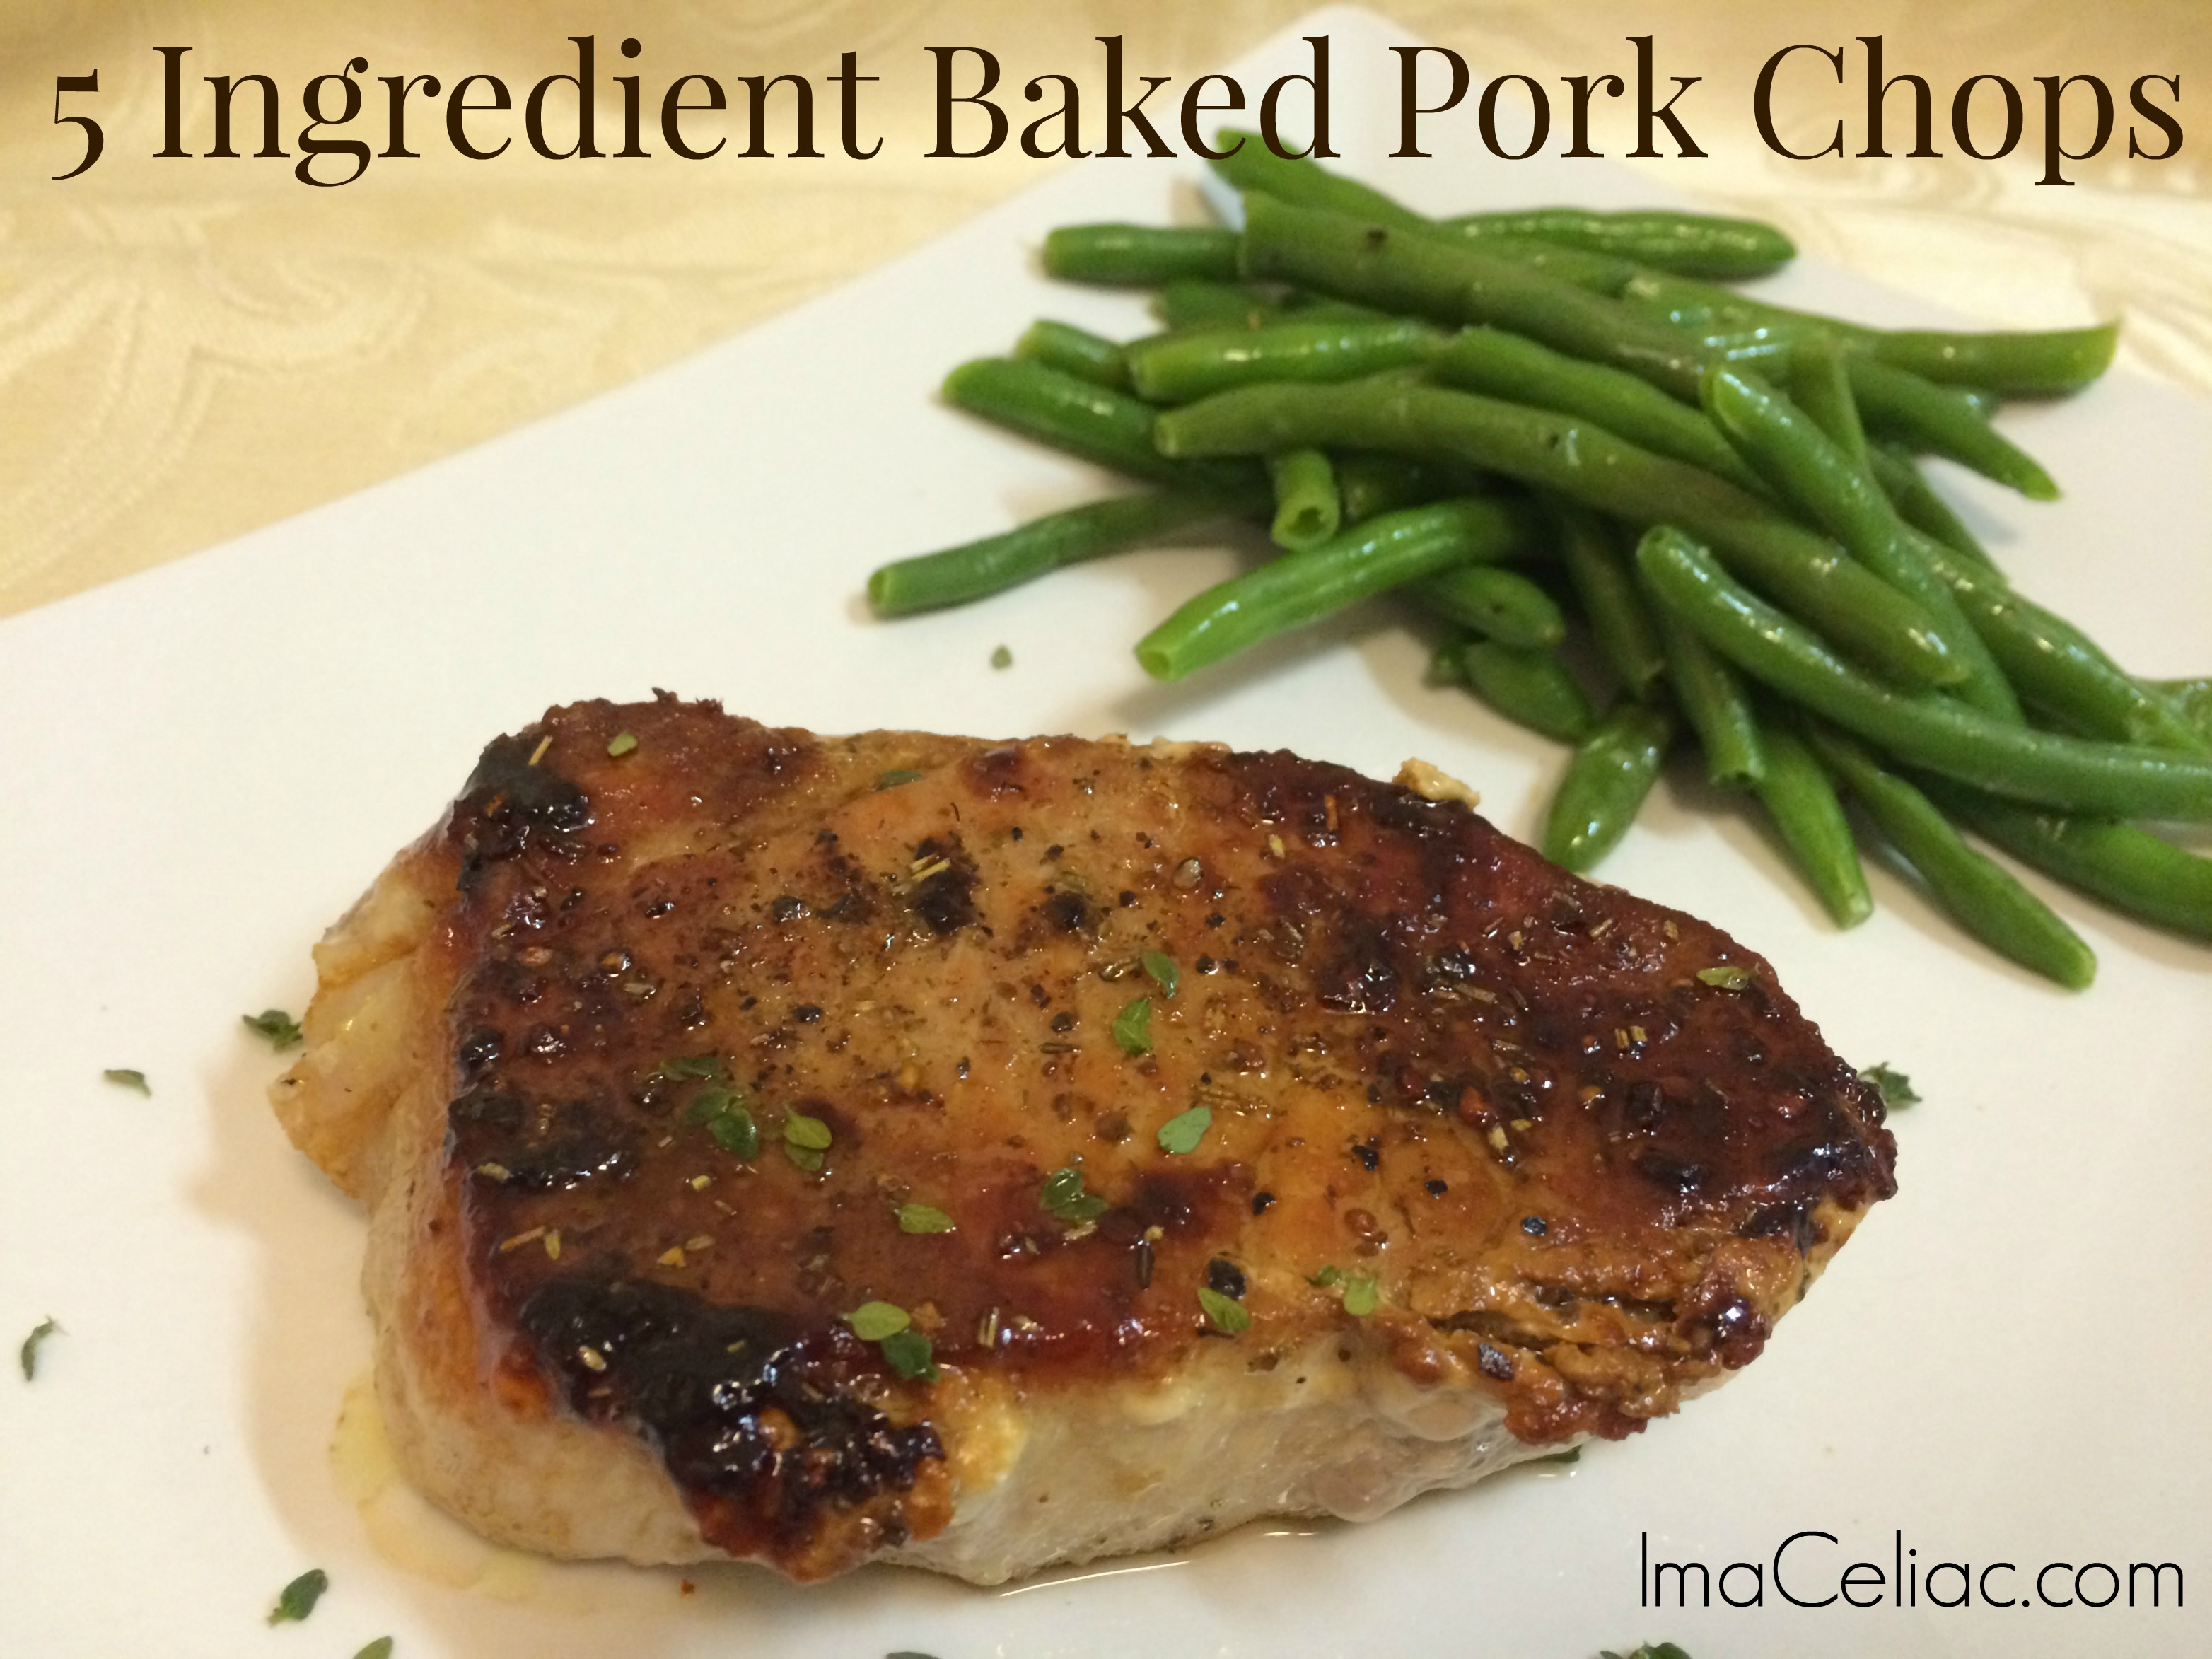 Use These 5 Ingredients To Make Gluten Free Baked Pork Chops That Will Wow